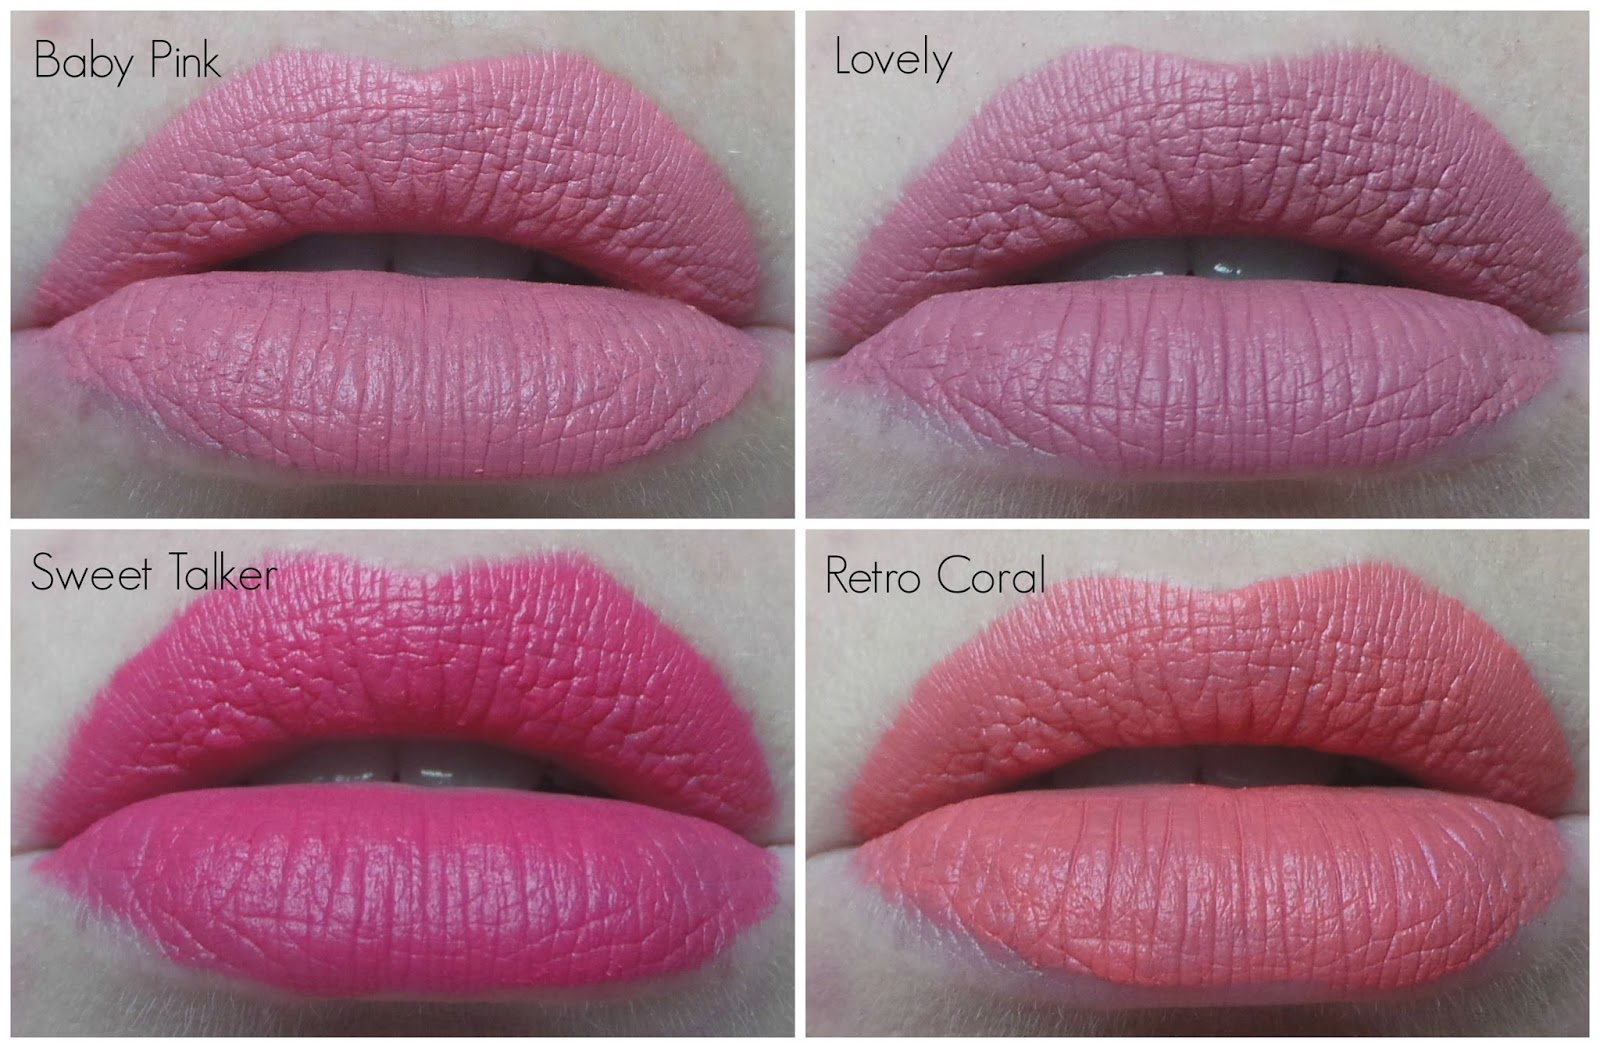 Anastasia Liquid Lipsticks-Lovely, Baby Pink and Retro Coral, Sweet Talk